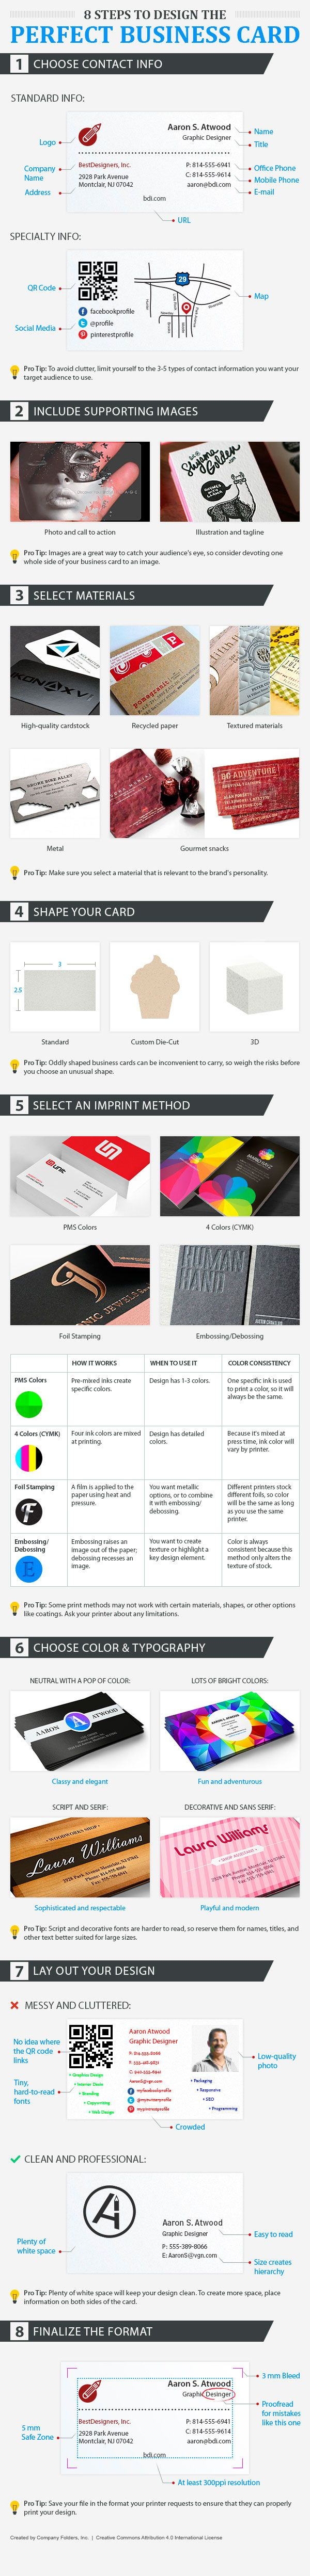 Infographic Tips To Design The Perfect Business Card Business